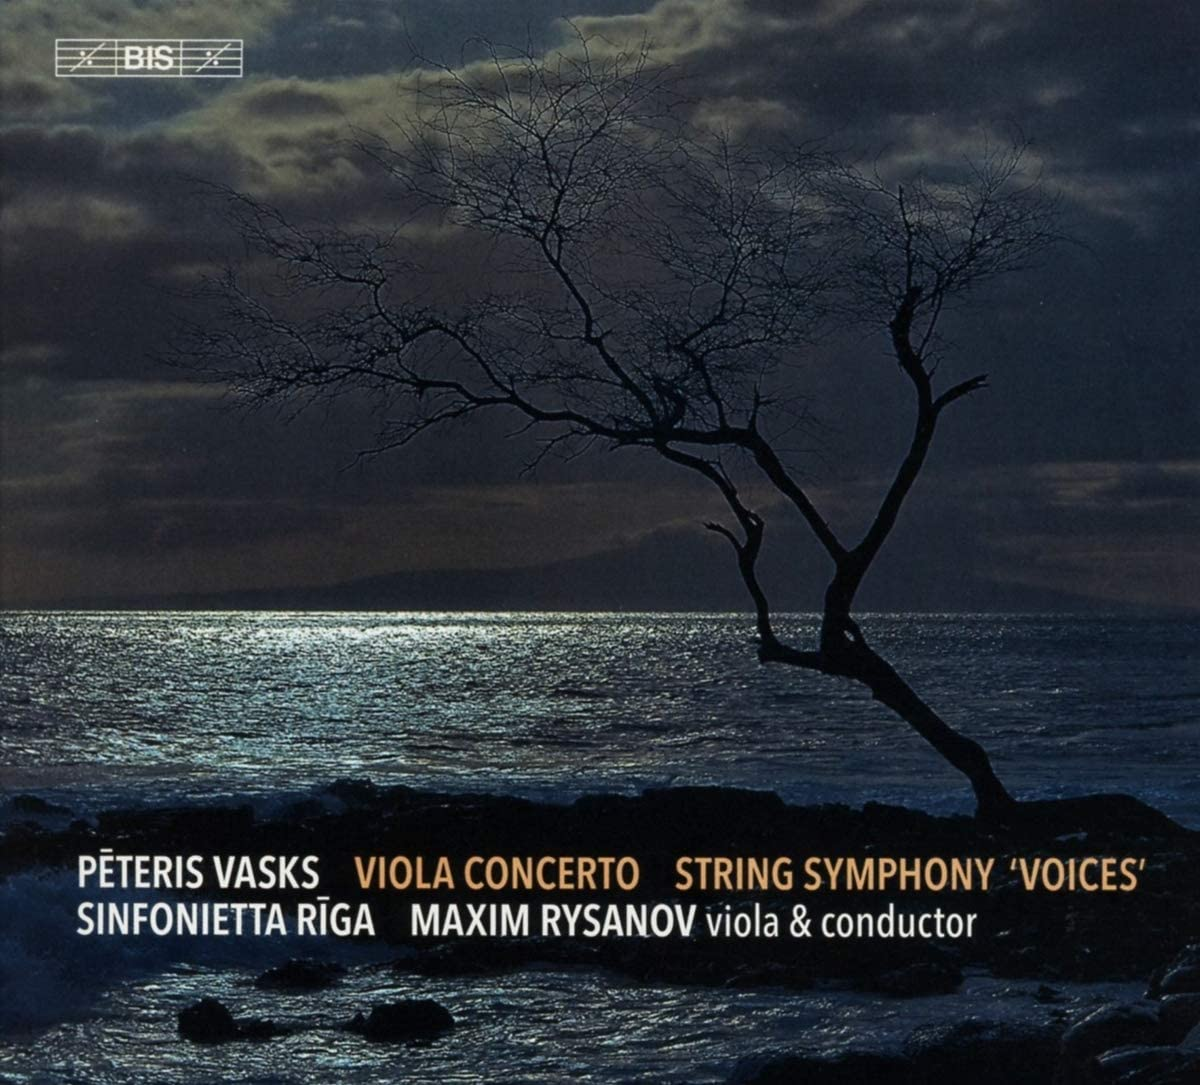 Review of VASKS Viola Concerto (Maxim Rysanov)